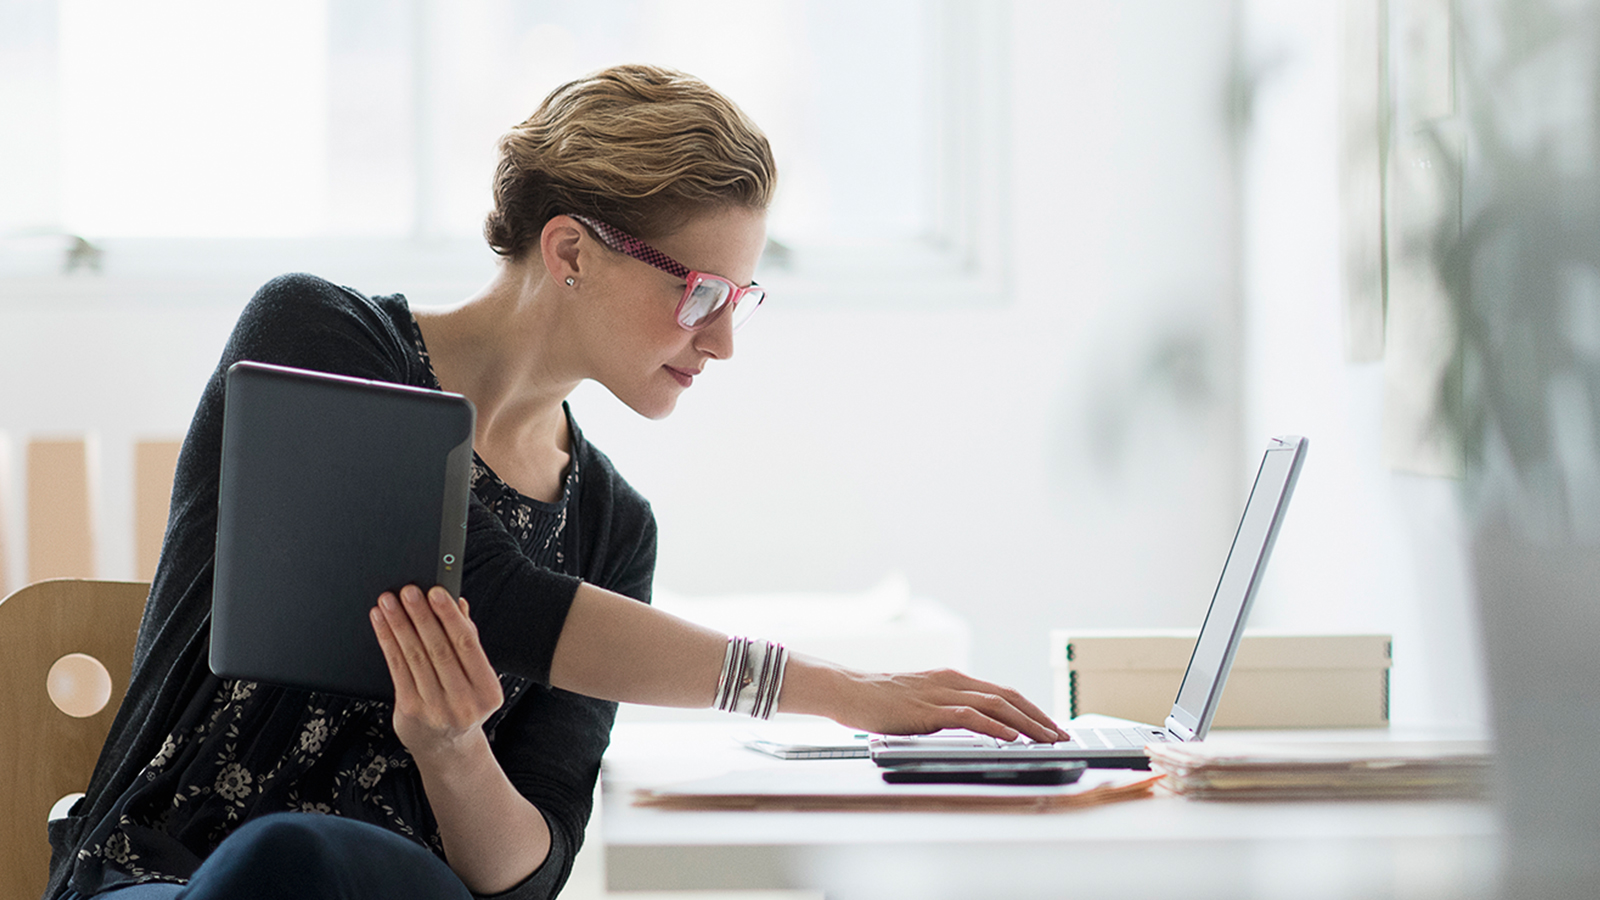 Woman seated at desk using laptop and holding a tablet with a smart phone nearby.